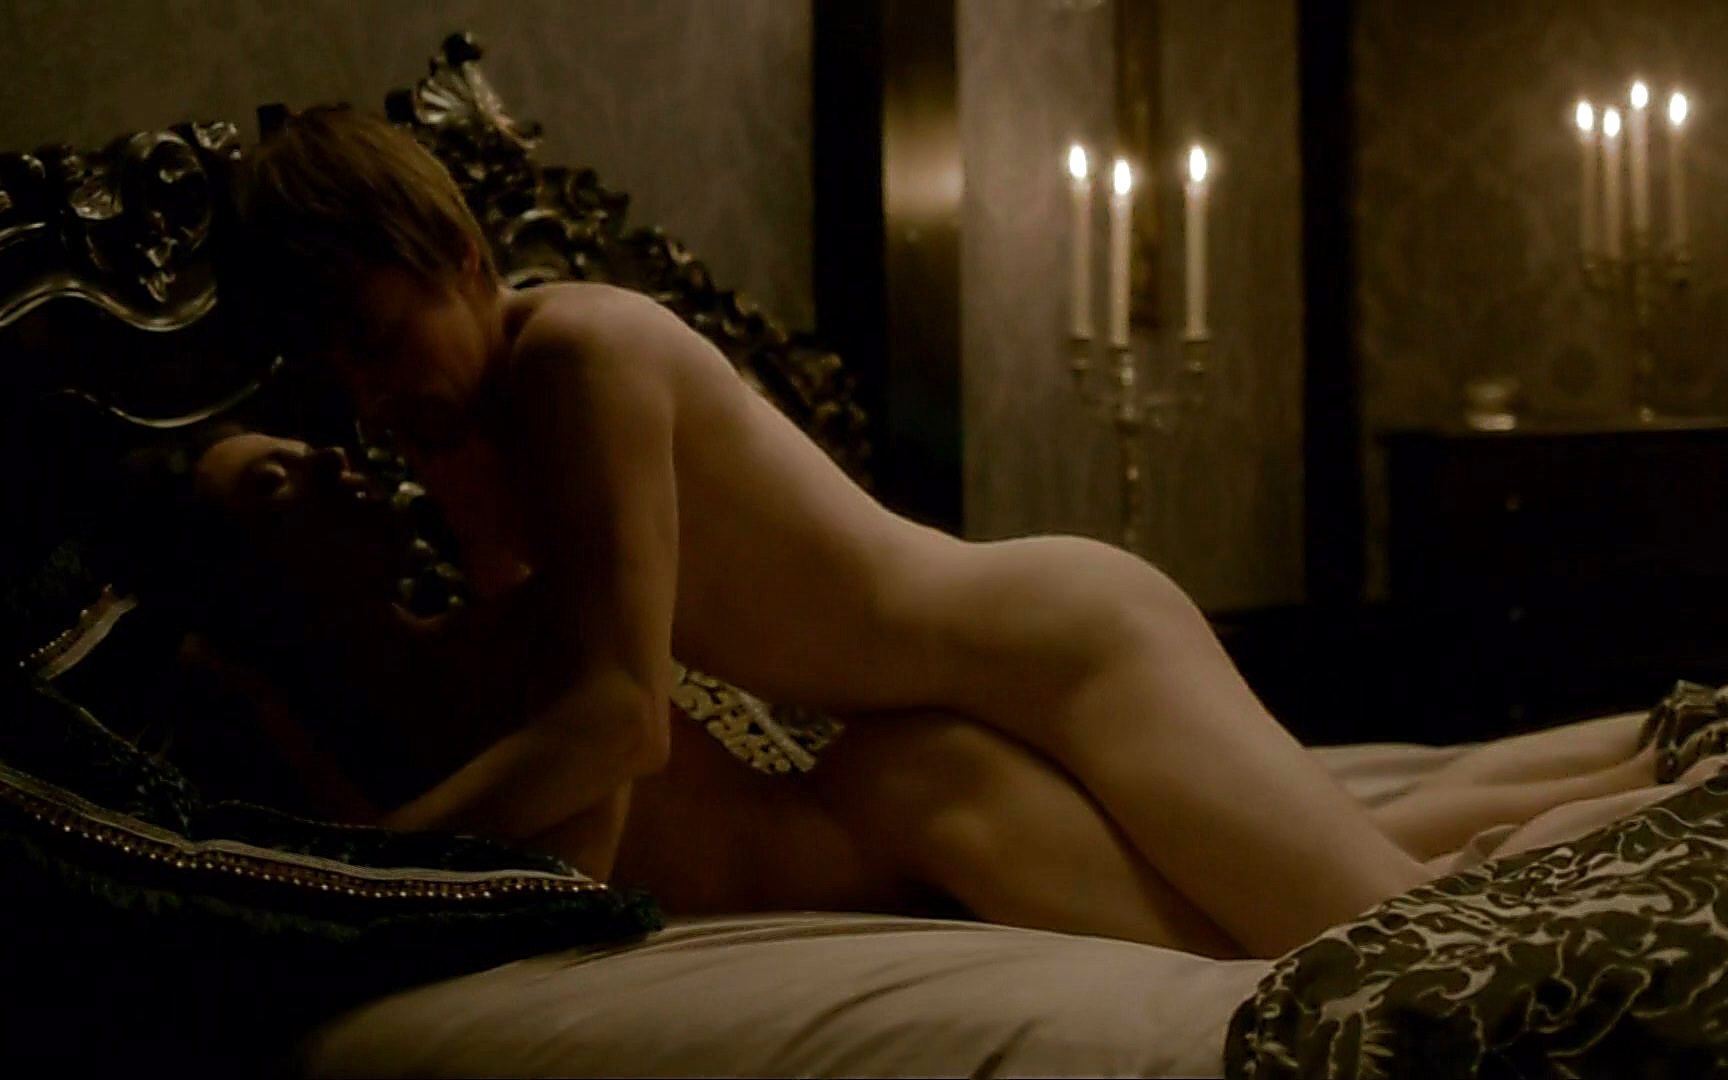 Reeve Carney sexy shirtless scene July 12, 2015, 6pm